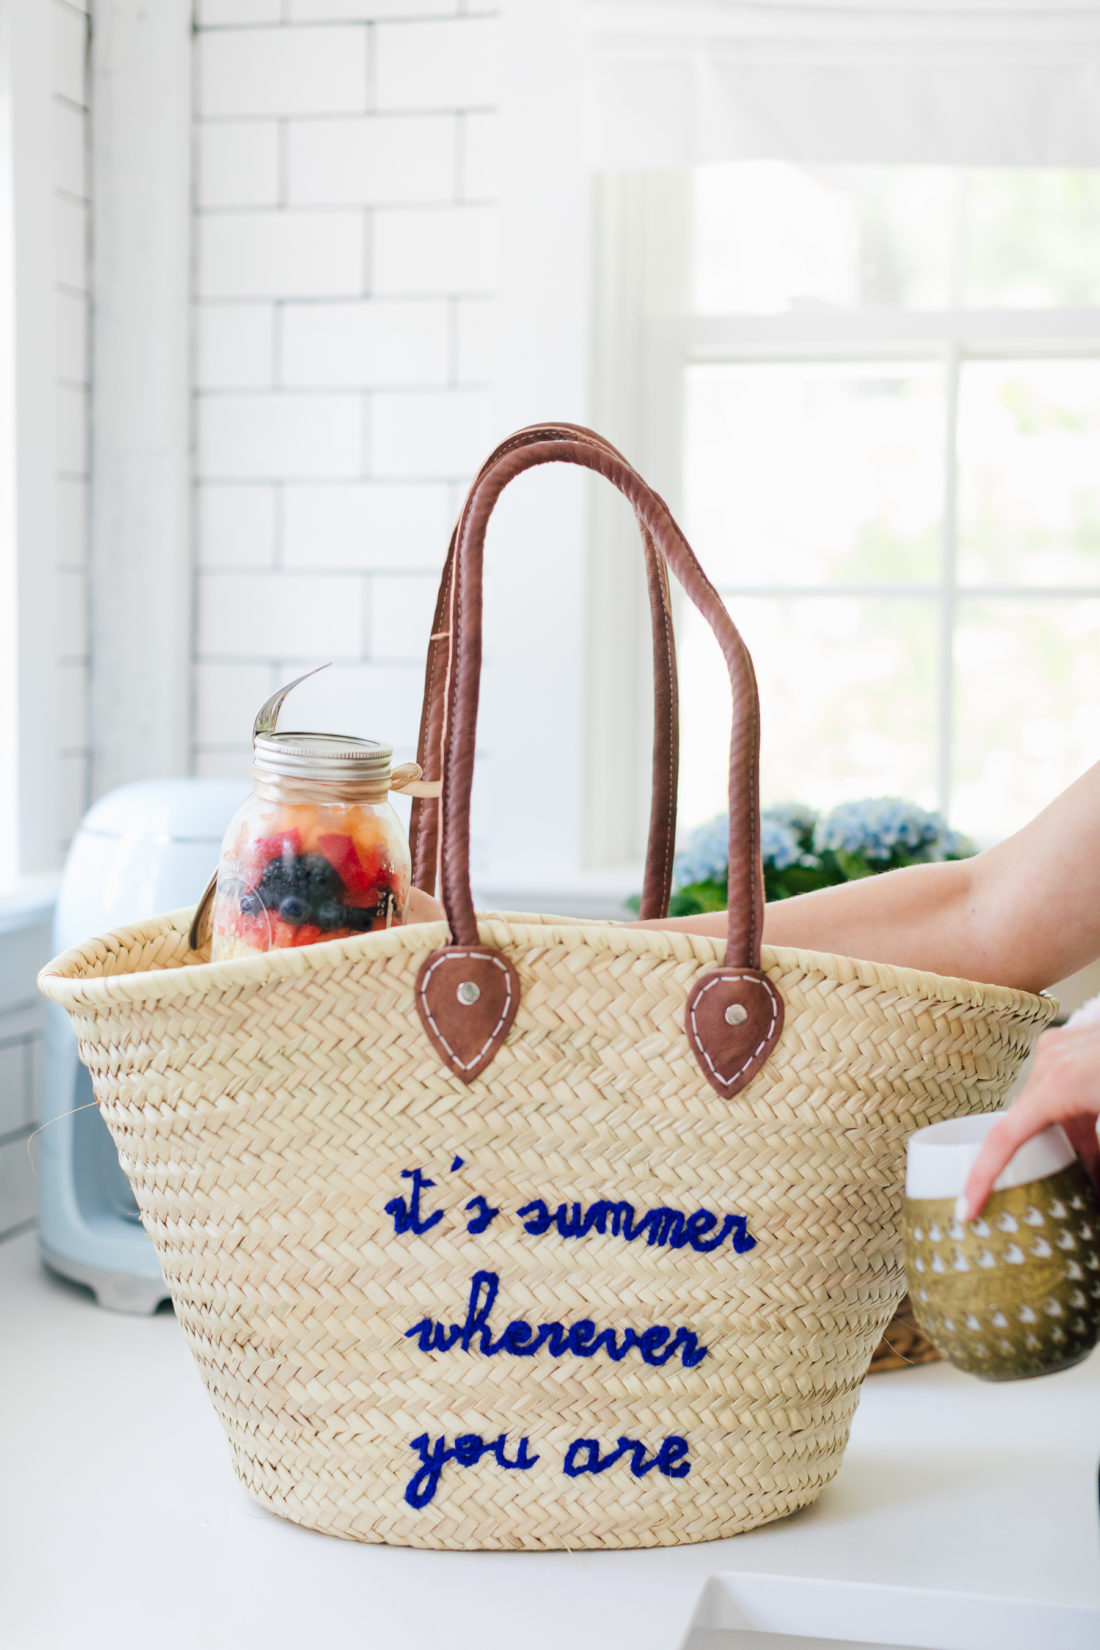 A straw bag that says It's Summer Whenever